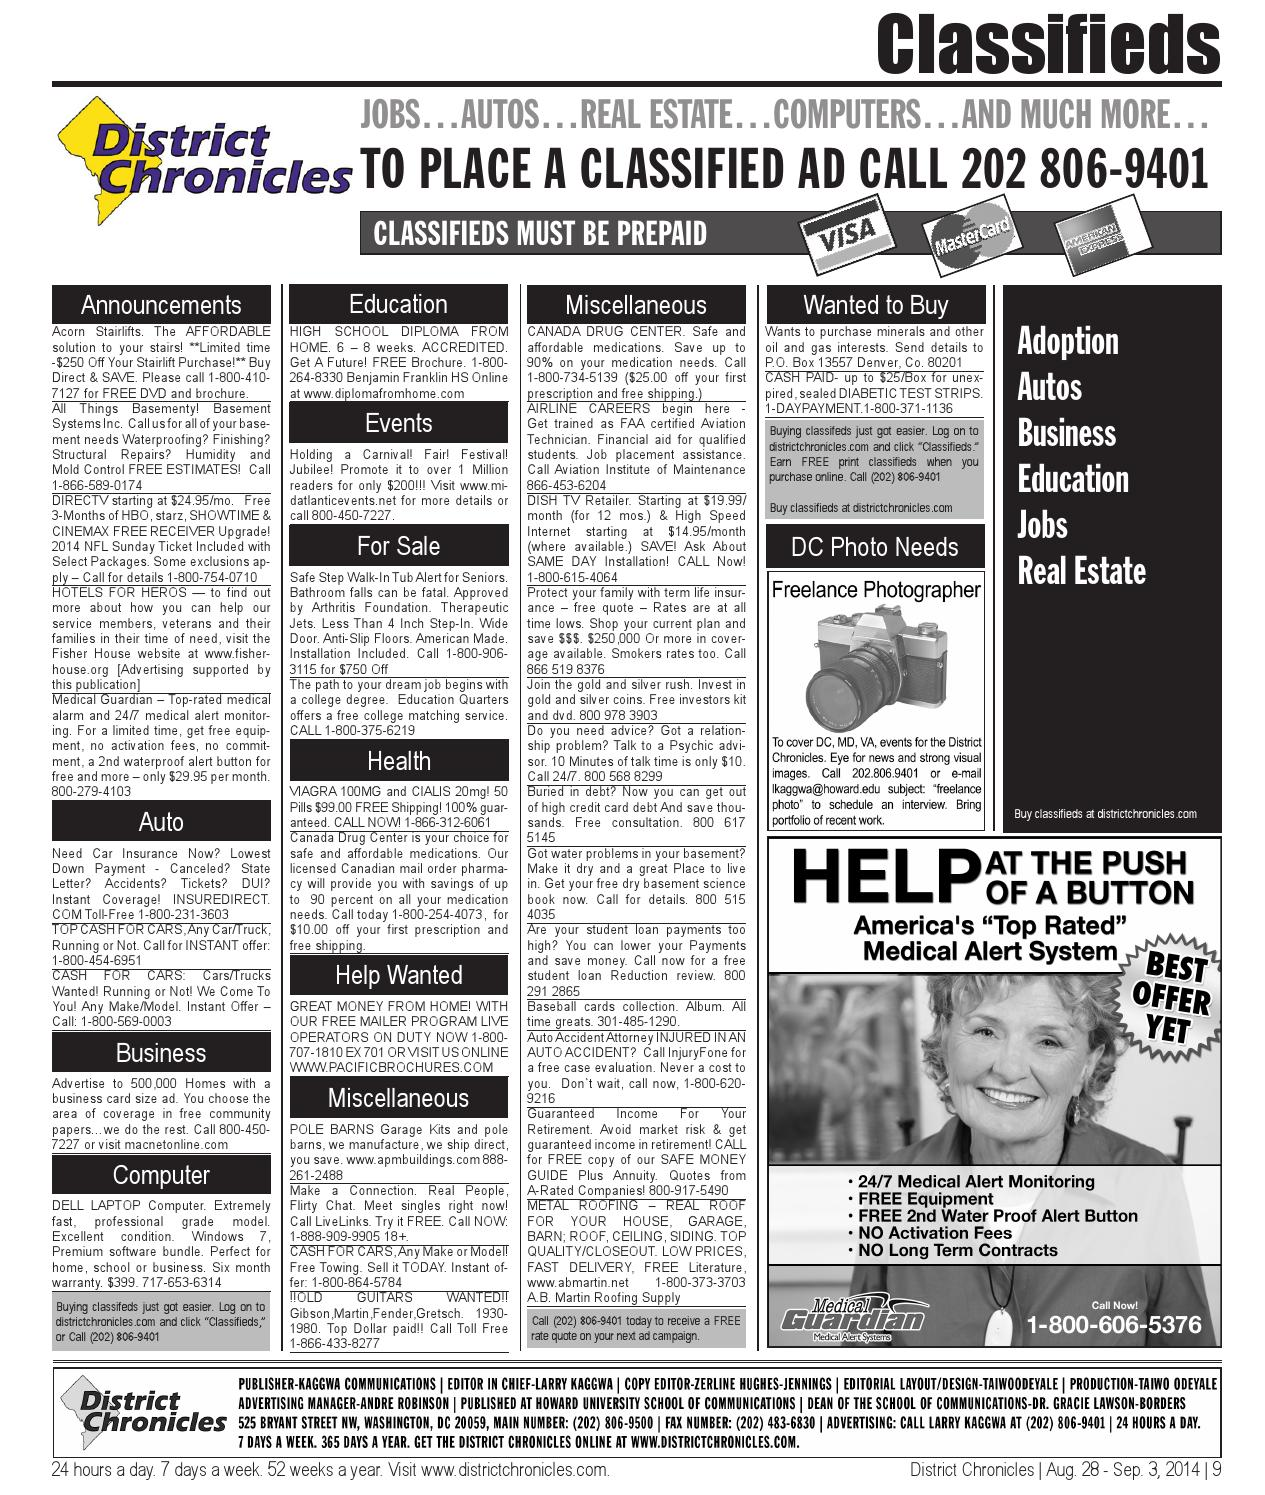 District Chronicles V14 Issue 2